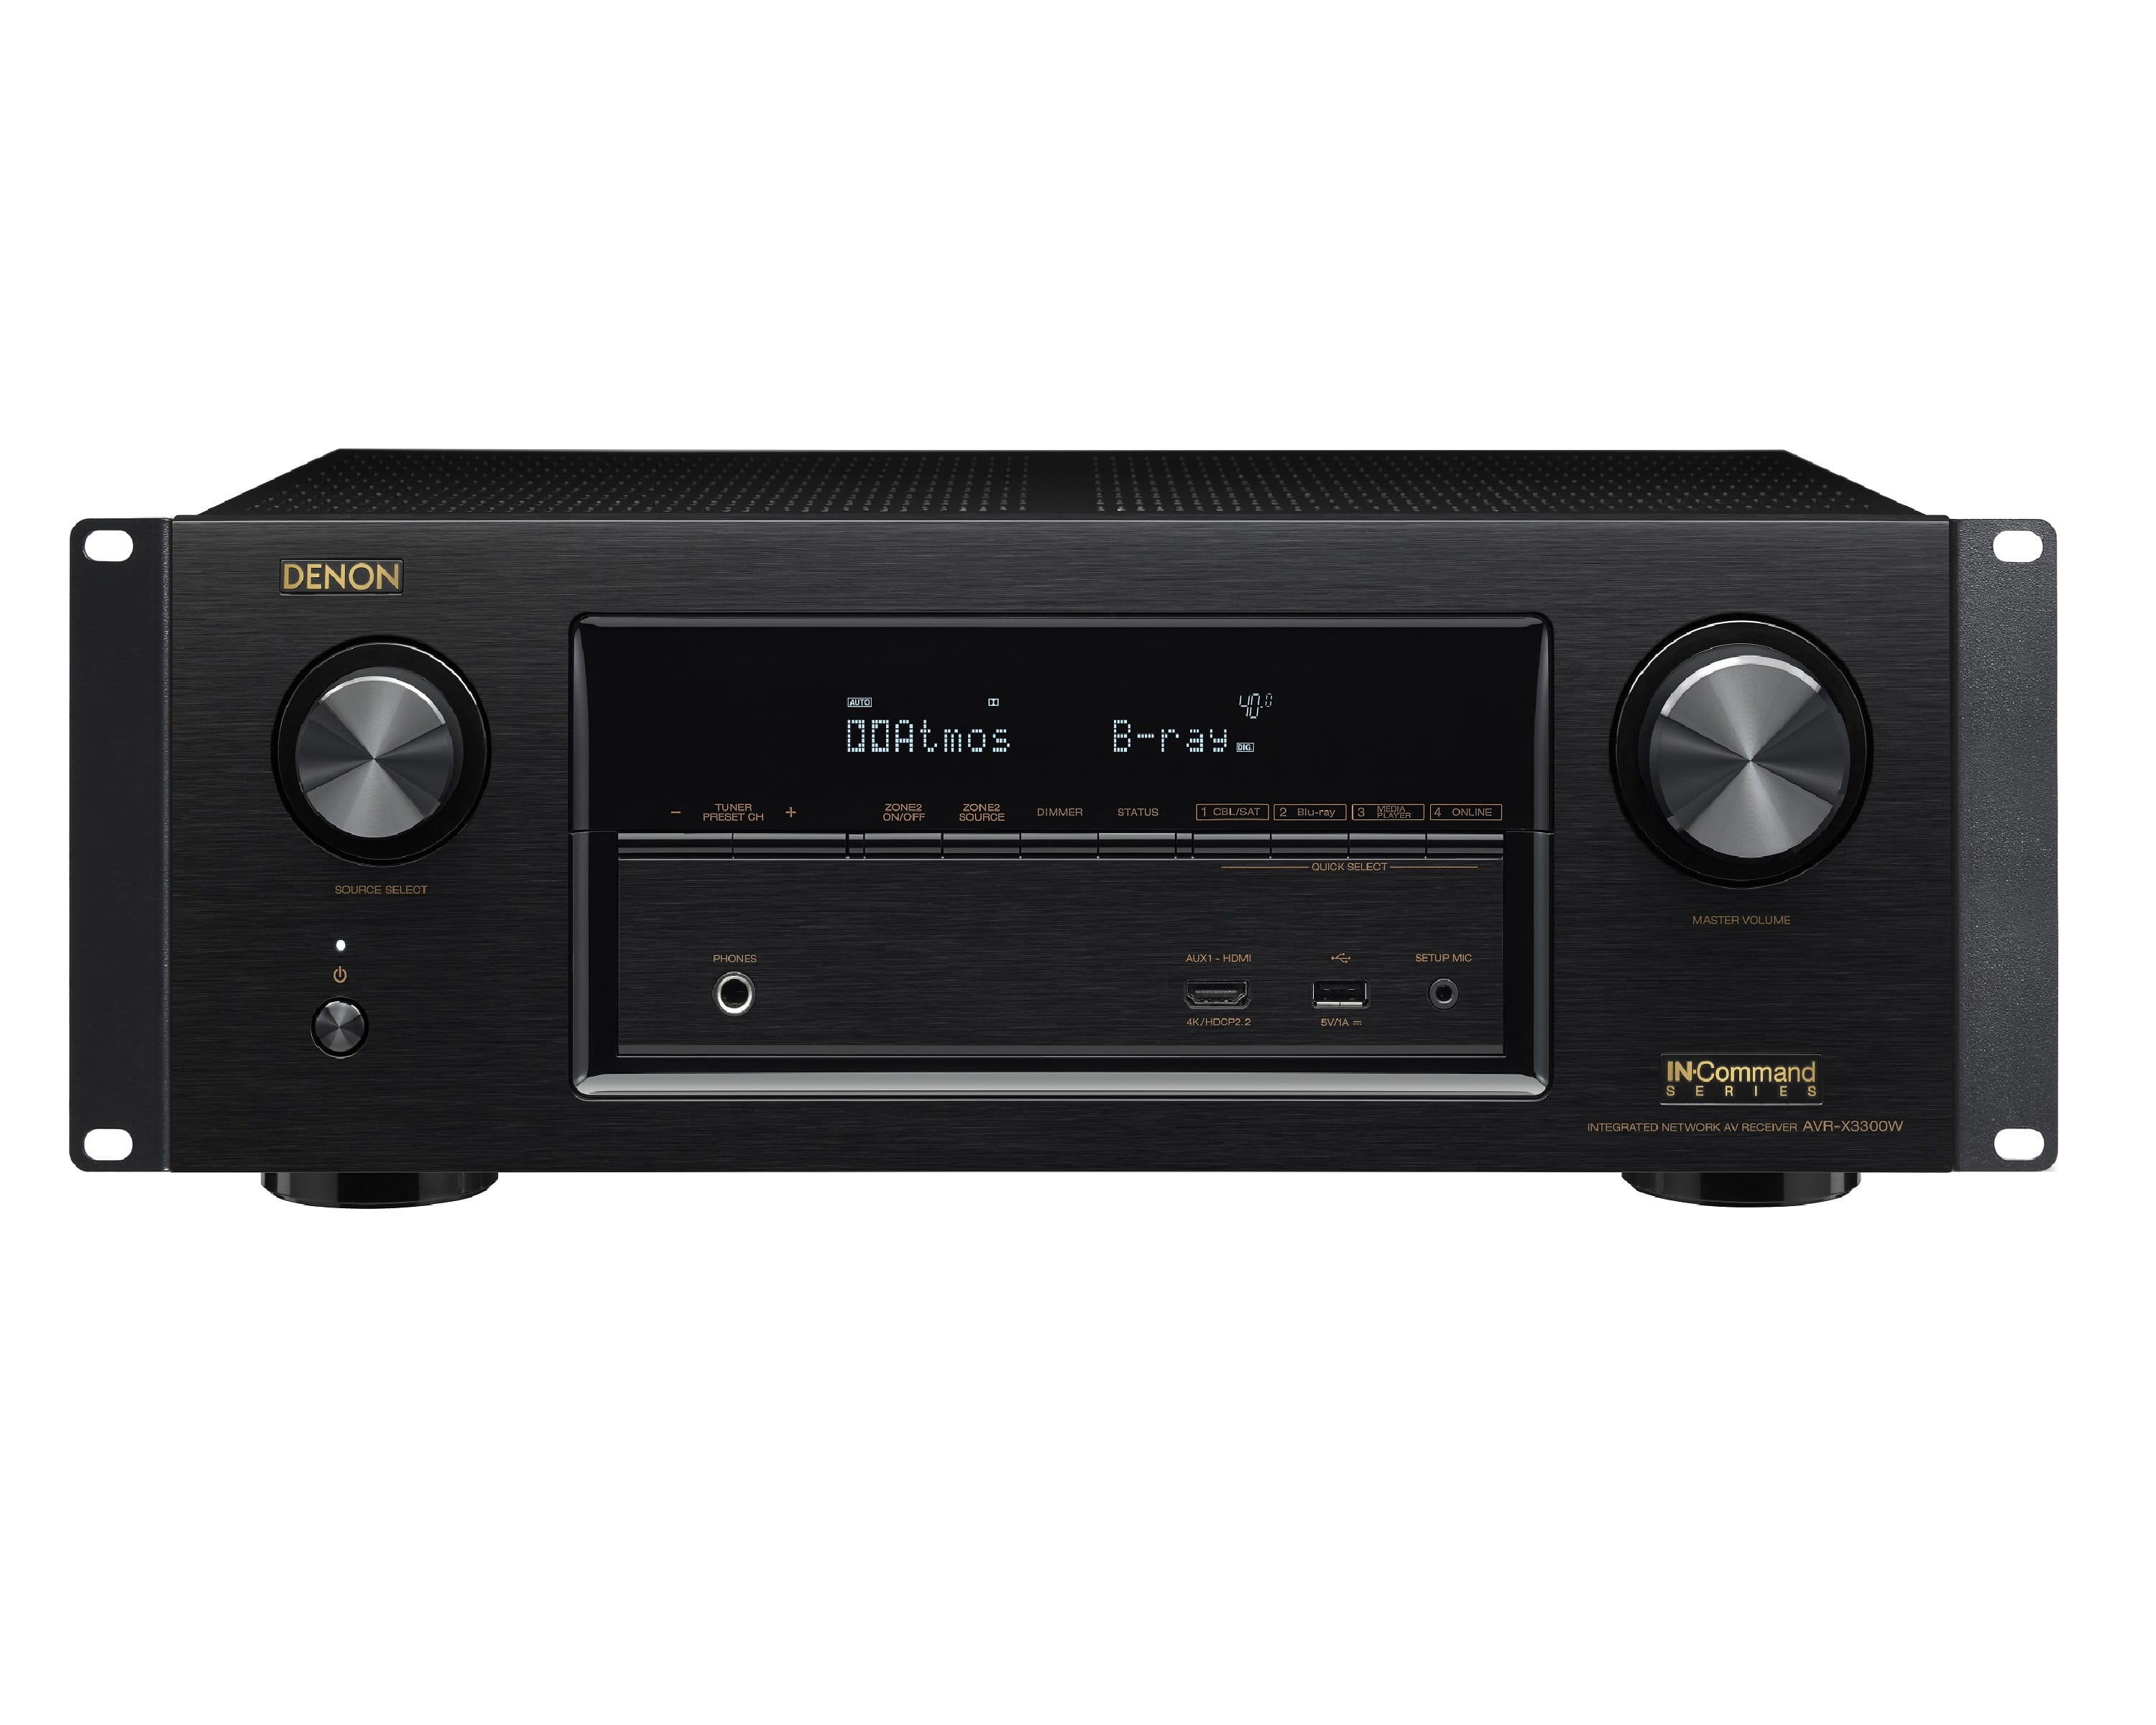 $529.99 + 5$ ship/tax Denon Professional DN-AVRX3300 7.2 Channel AV Surround Receiver with Wi-Fi, Bluetooth, Ethernet Connectivity and Rack through Amazon via Woot.com